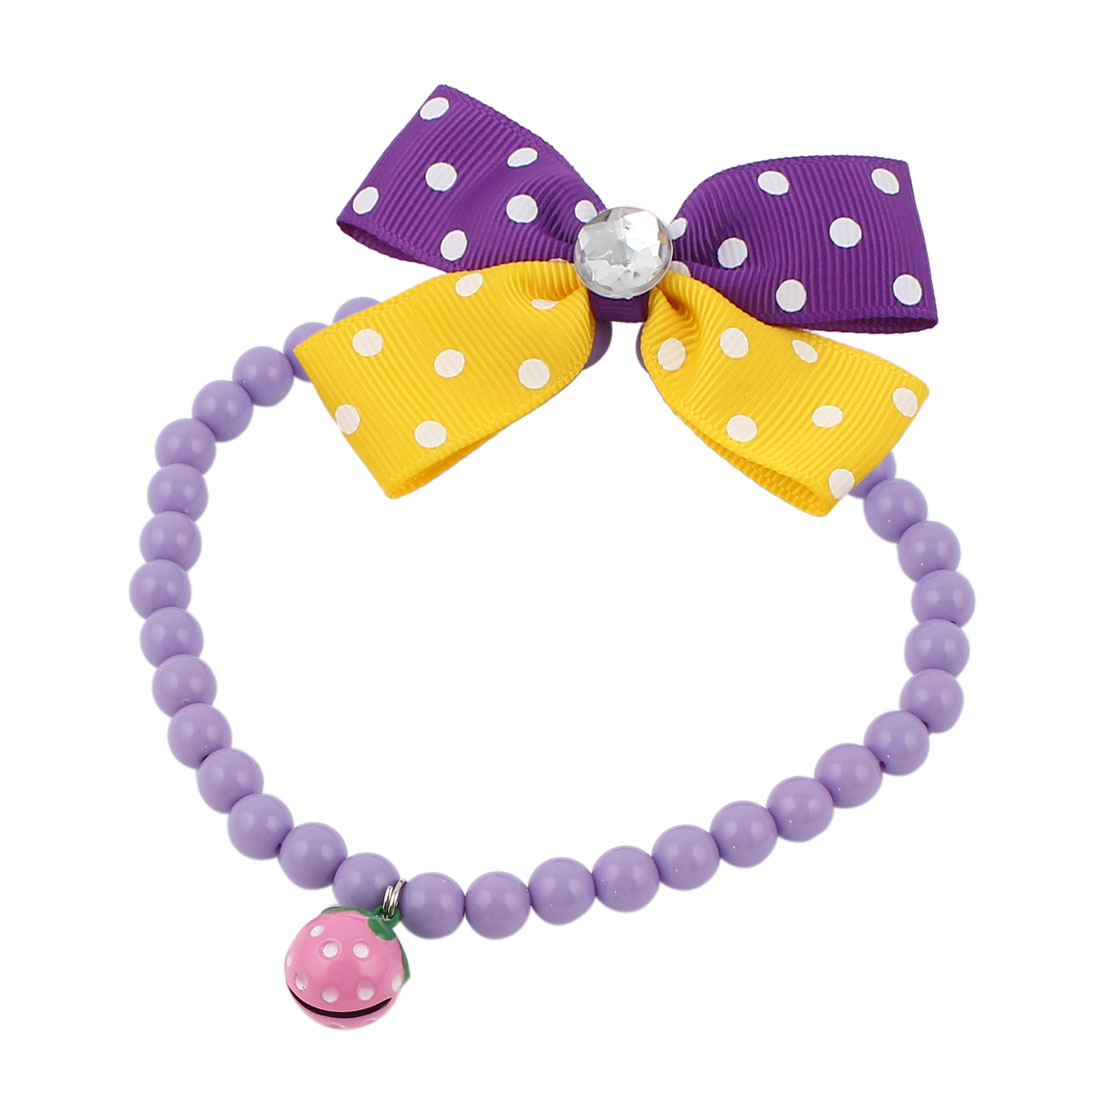 Metal Bell Pendant Bowtie Accent Pet Dog Plastic Beads Collar Necklace Purple Yellow L